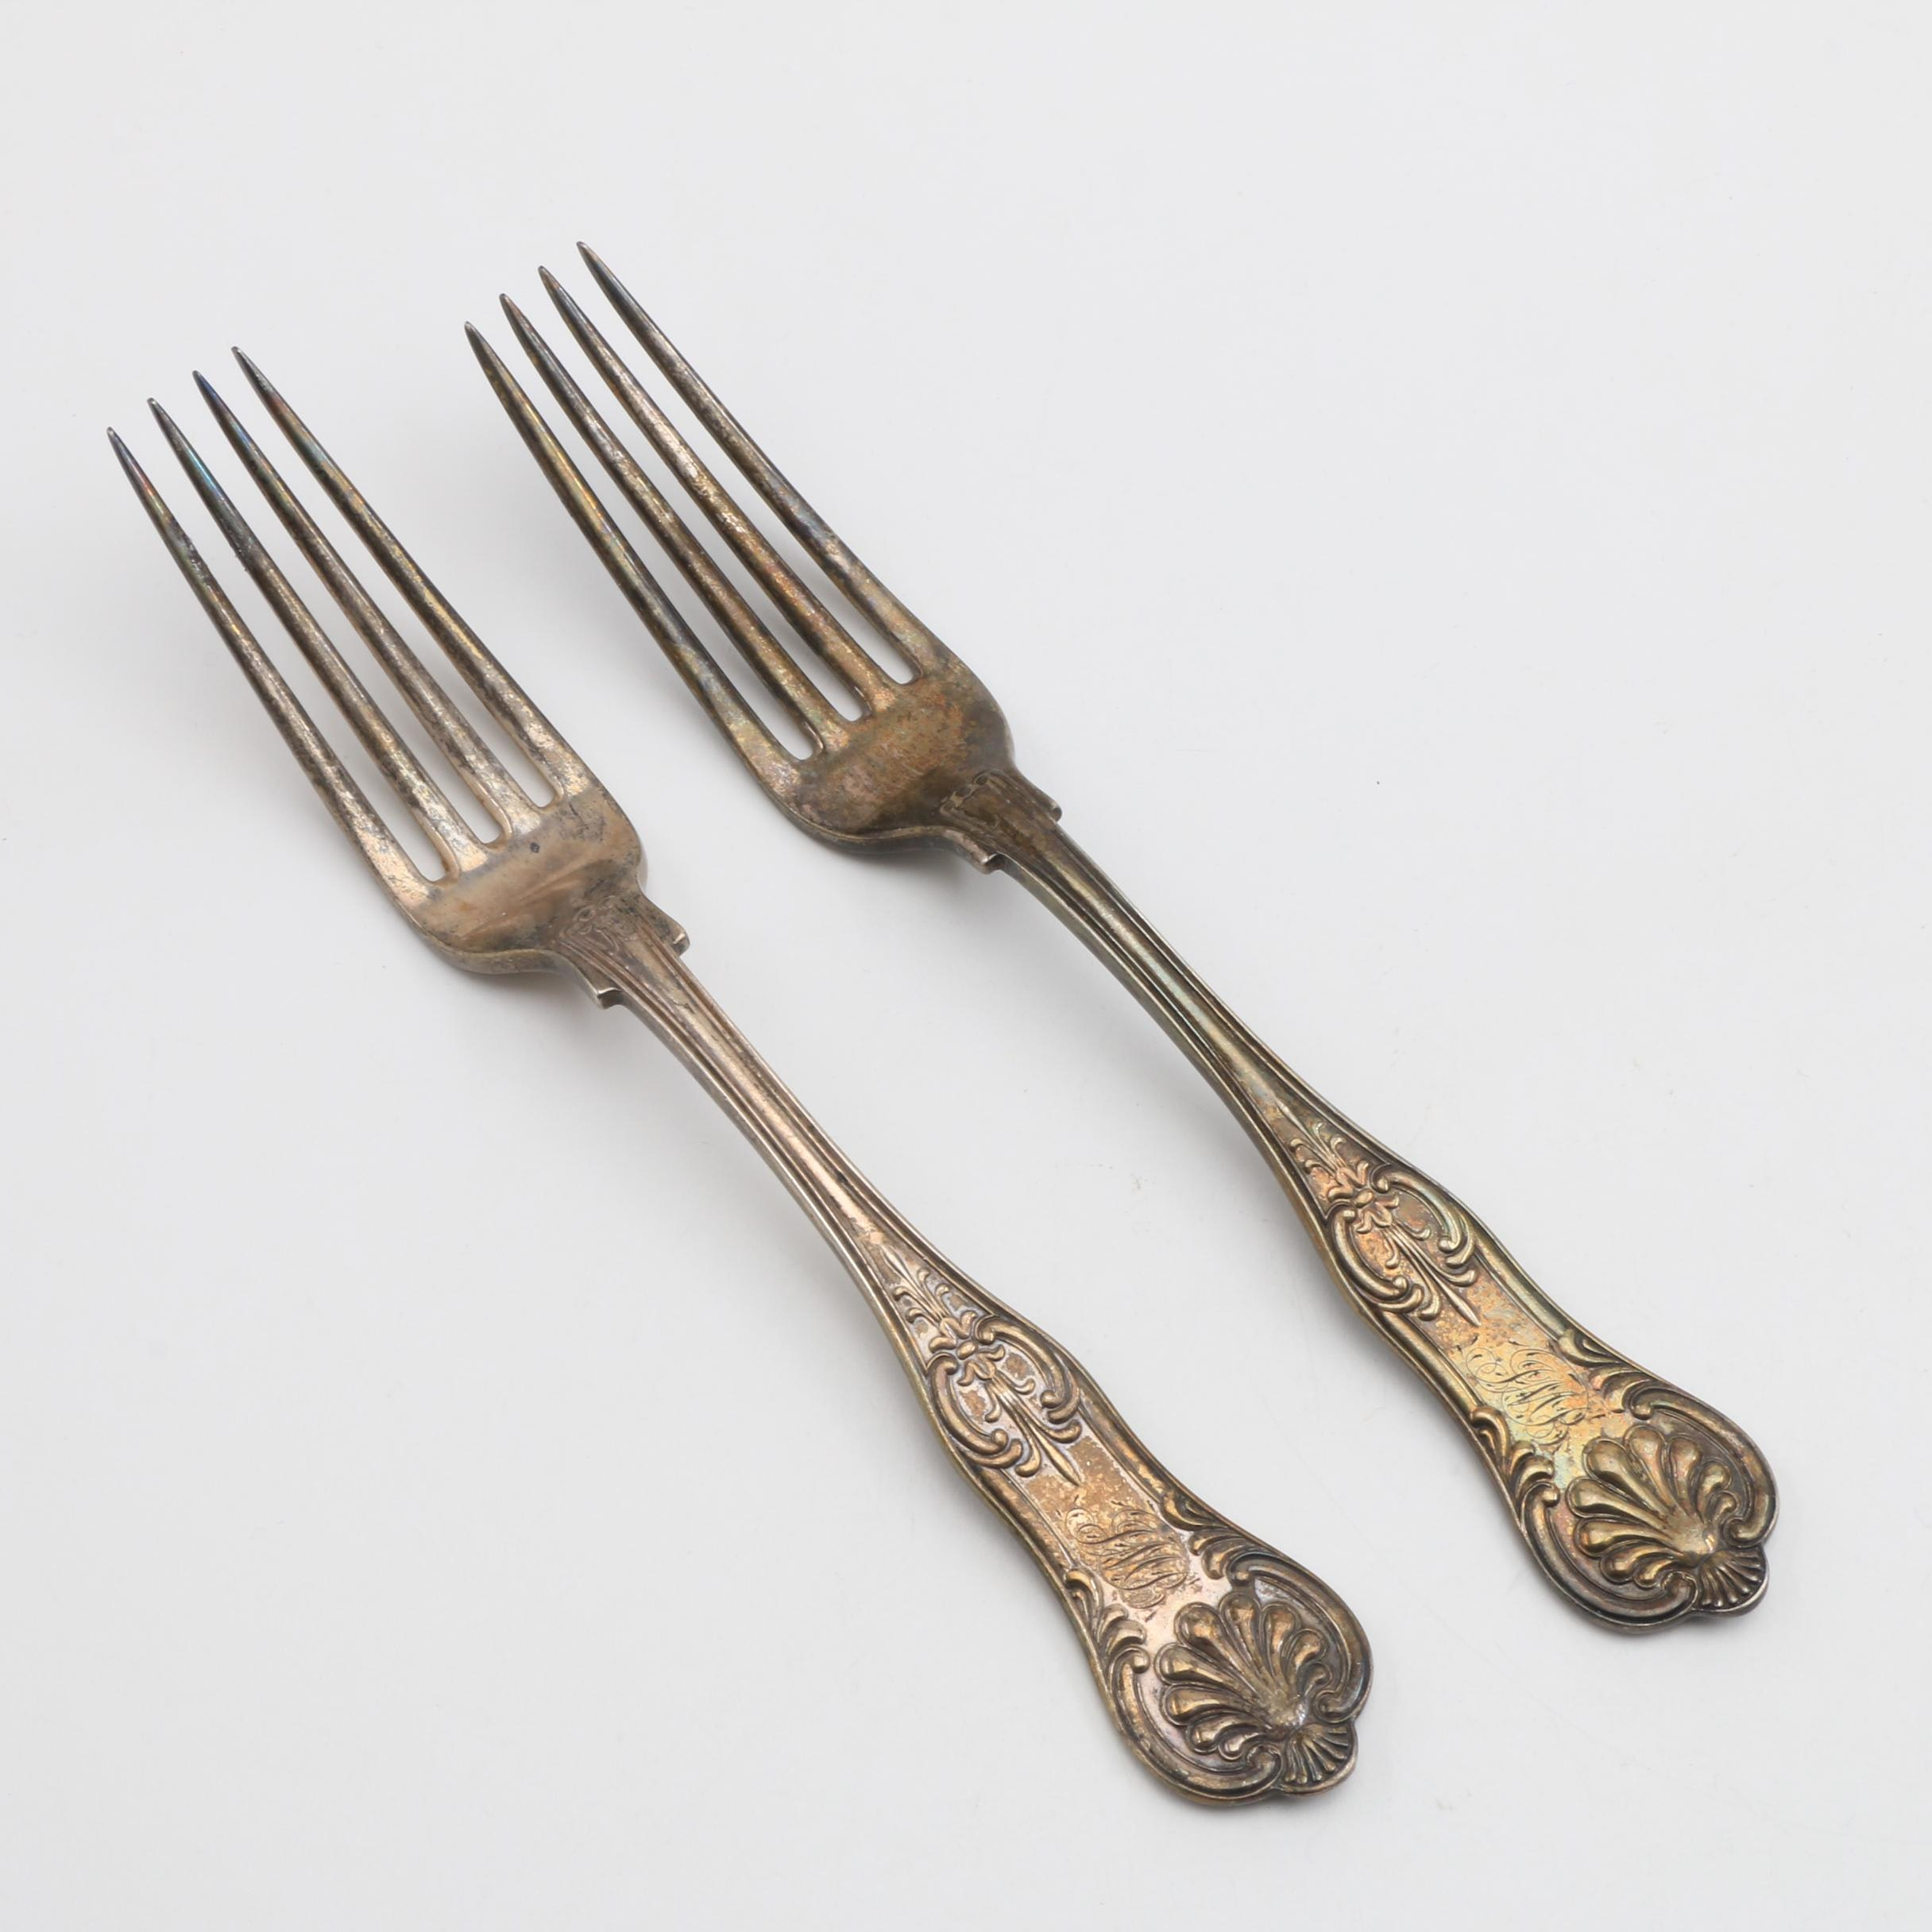 Two Tiffany & Co Sterling Silver Dinner Forks